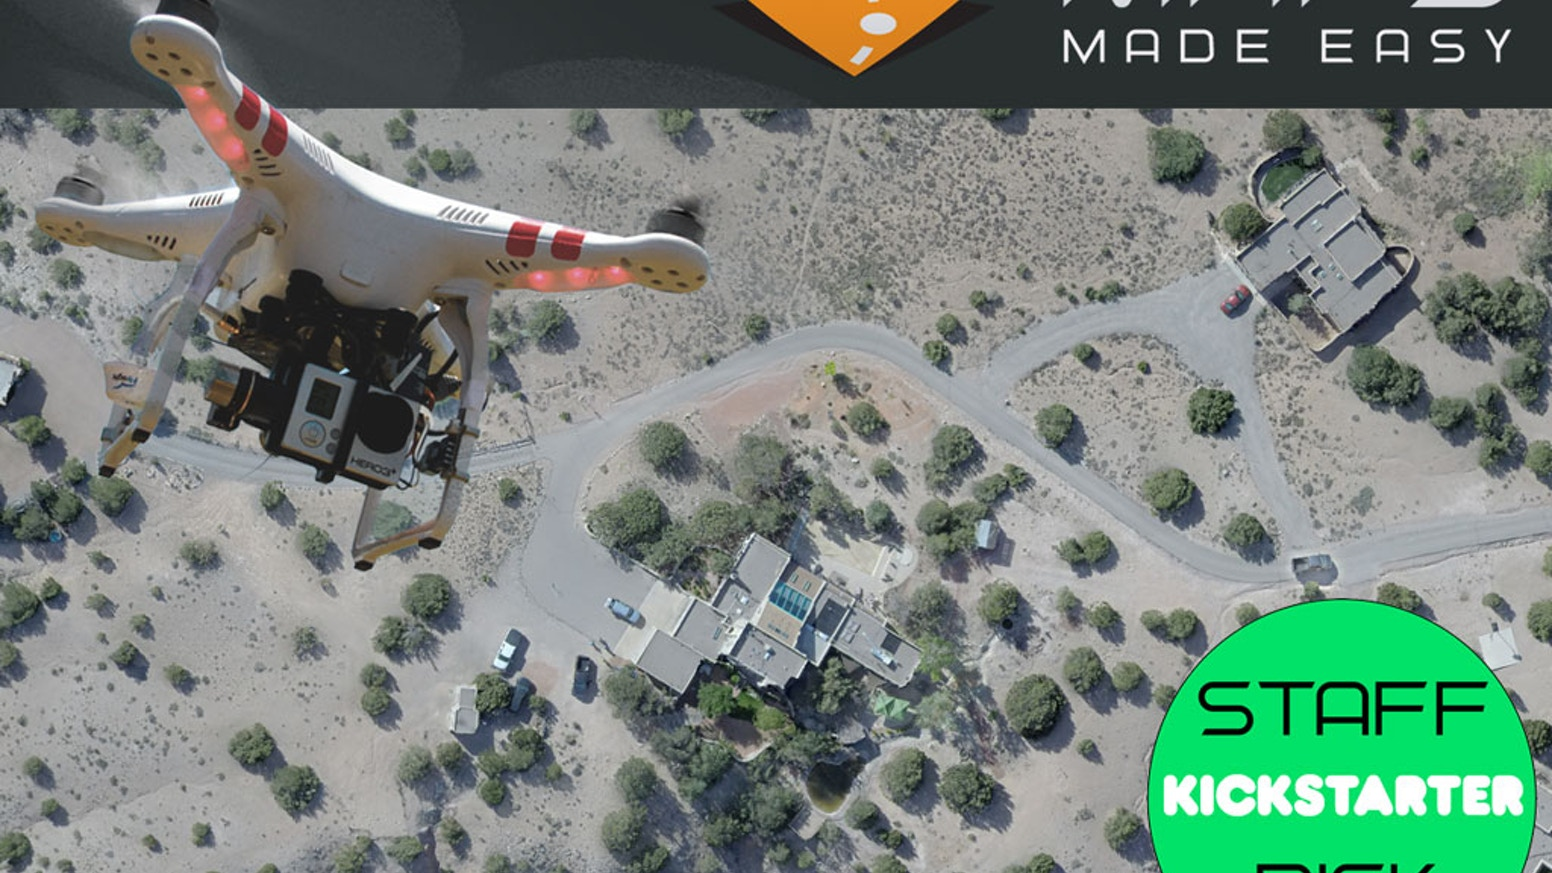 Mapping With Drones By Drones Made Easy Kickstarter - Current aerial maps